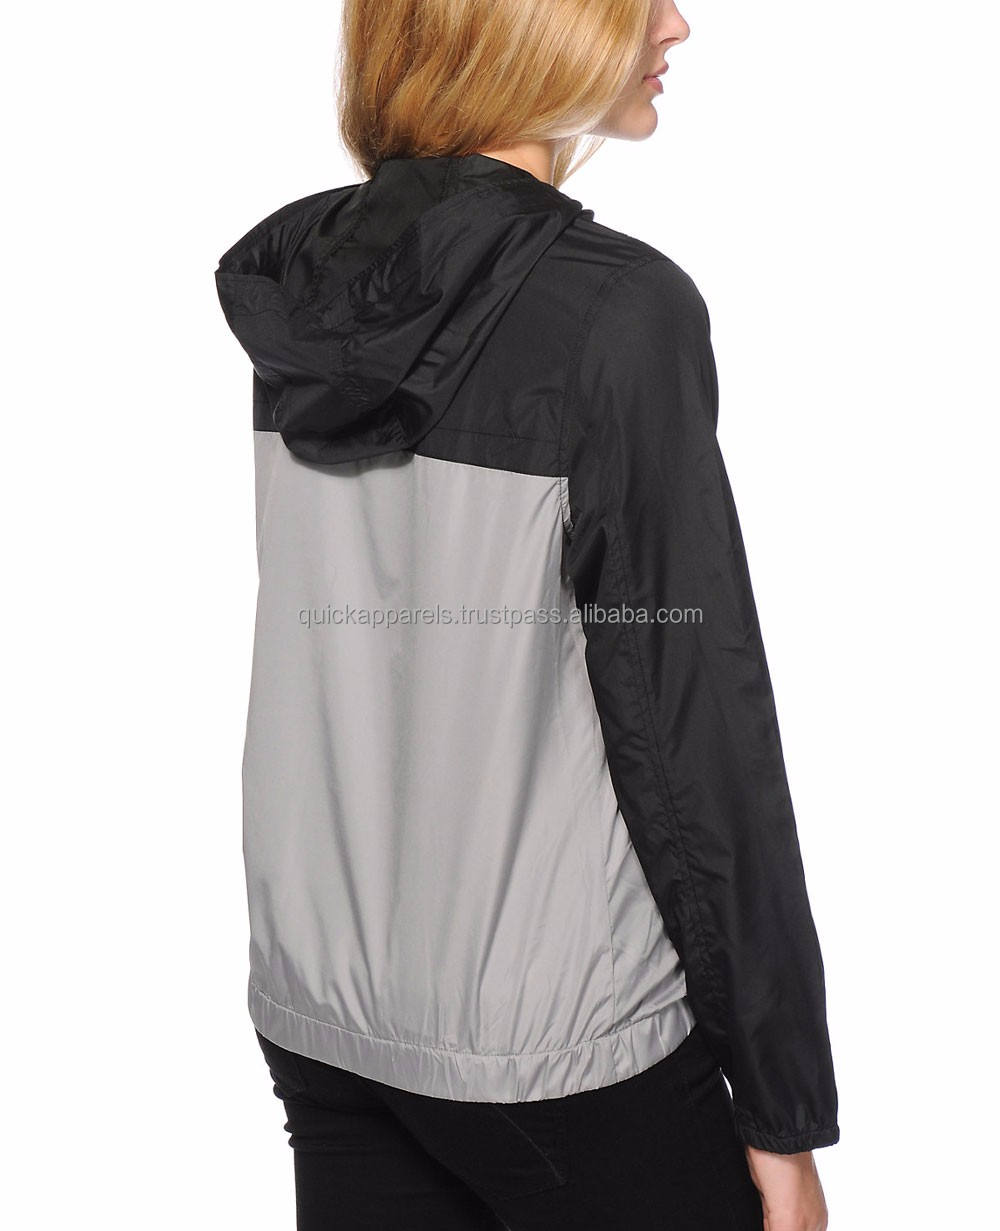 Factory Price new style mens windbreaker jacket Training coat combat windbreaker